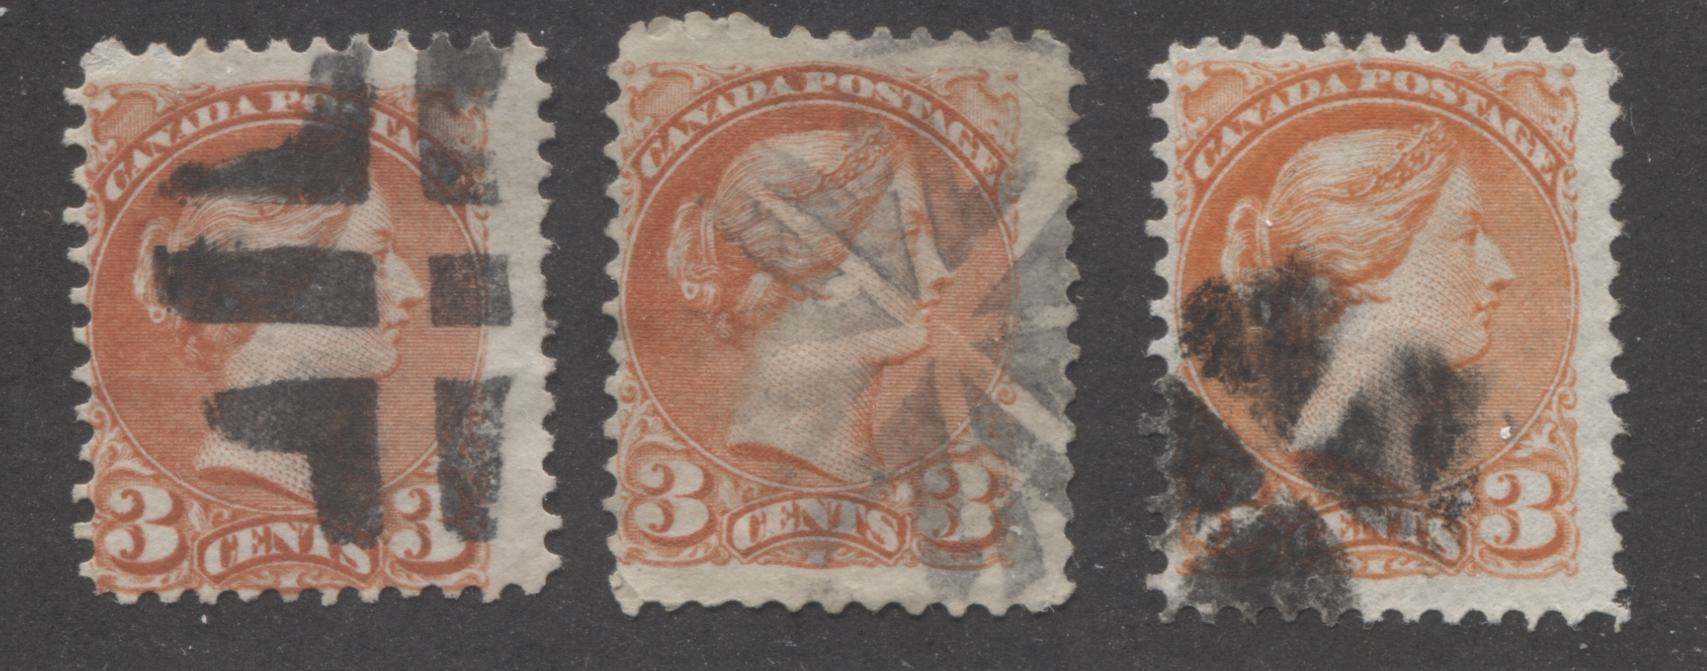 Canada #37ii, 37iii 3c Dull Red and Orange Red Queen Victoria, 1870-1897 Small Queen Issue, Three Very Good or Fine Used Examples of the Mid-Montreal Printing, Perf. 11.6 x 12 on Different Papers, Each With a Fancy Cancel Brixton Chrome